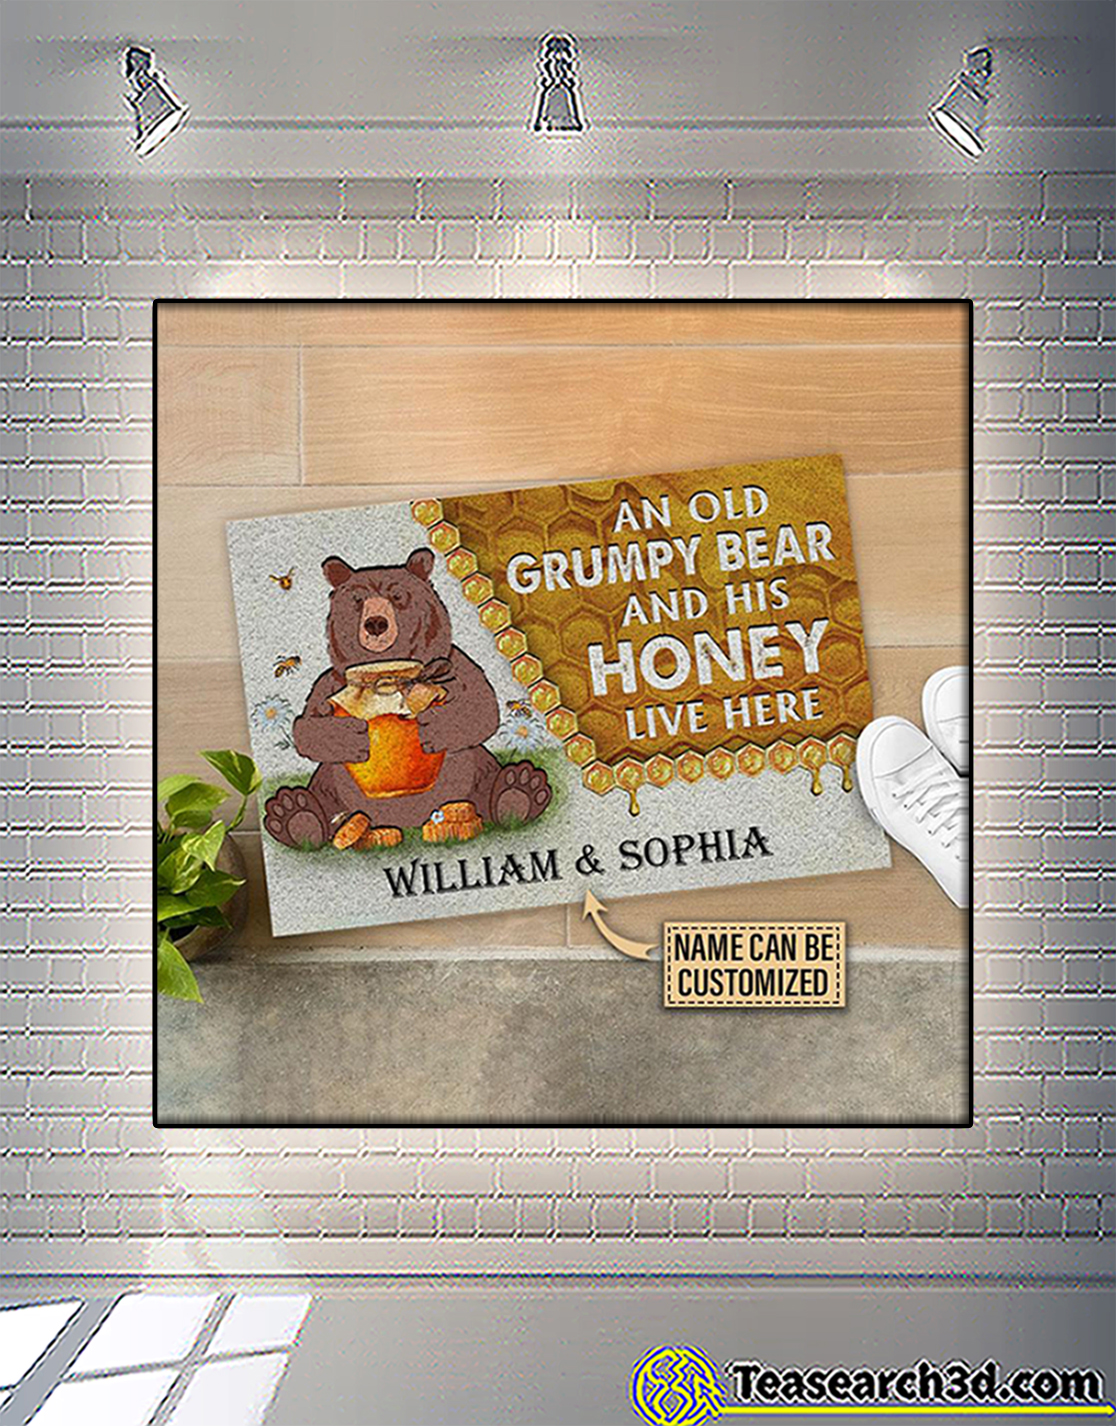 Personalized custom name an old grumpy bear and his honey live here doormat 2